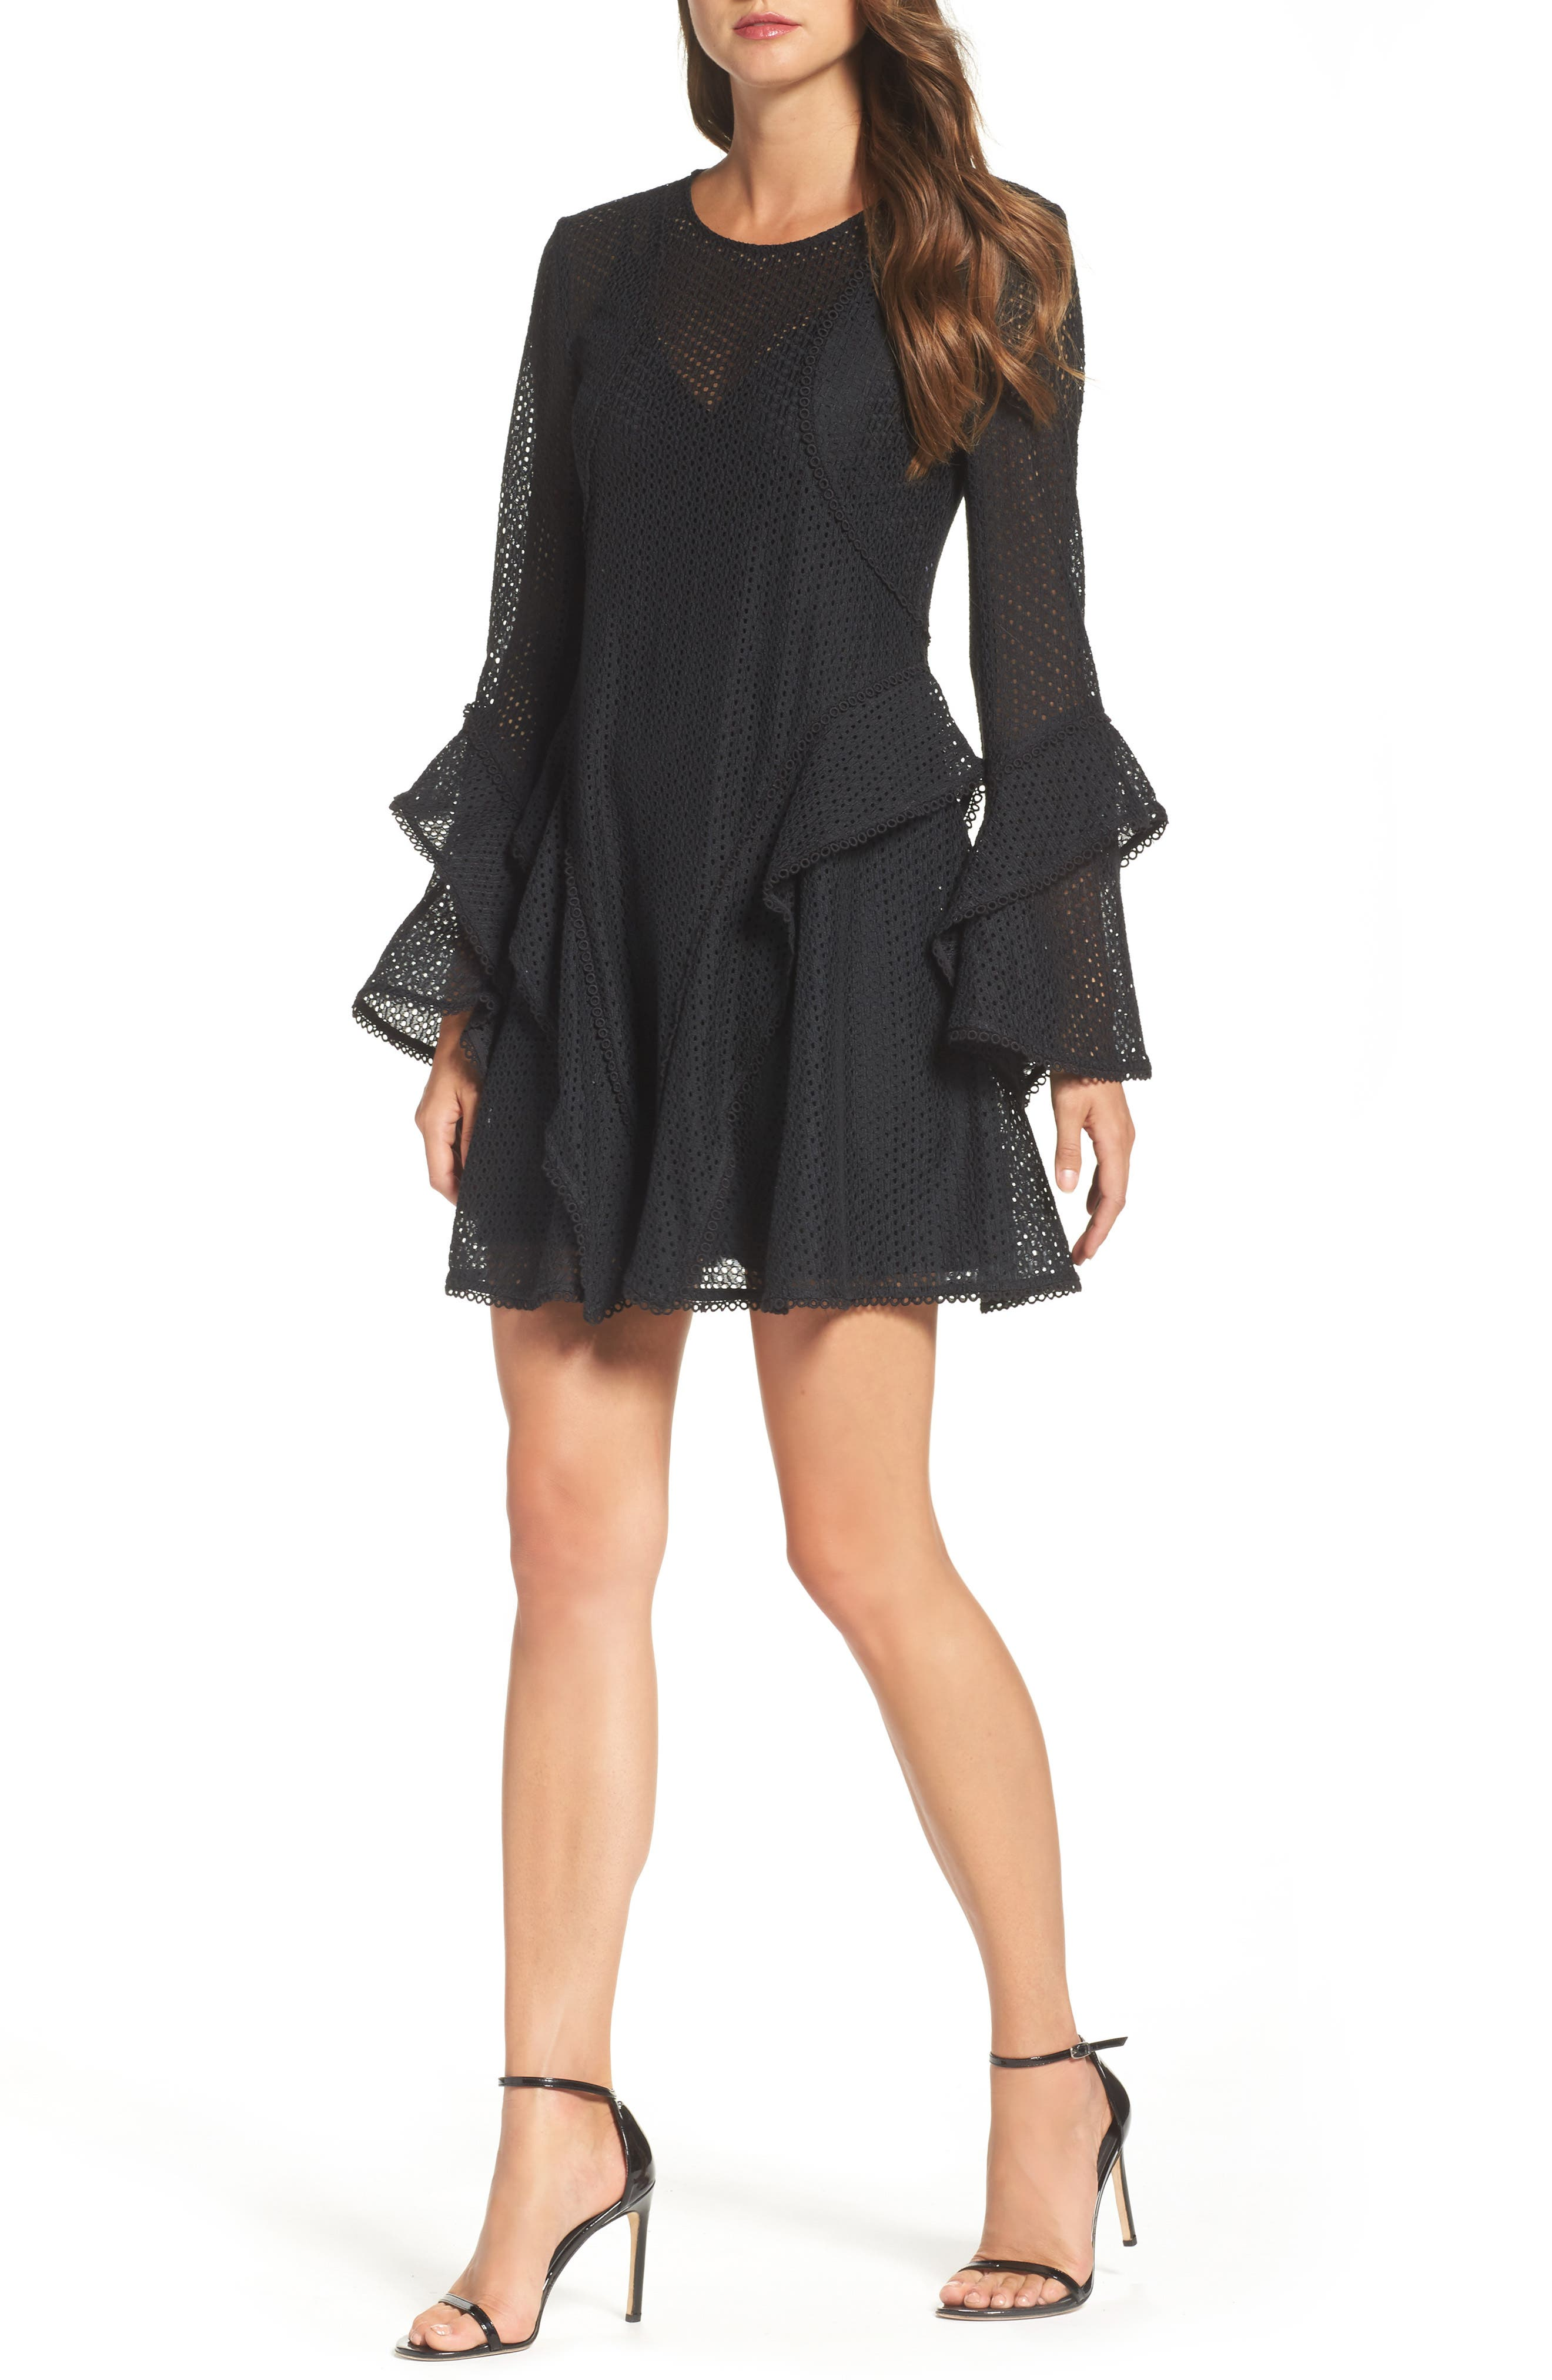 Aspire Lace Bell Sleeve Minidress,                             Main thumbnail 1, color,                             001